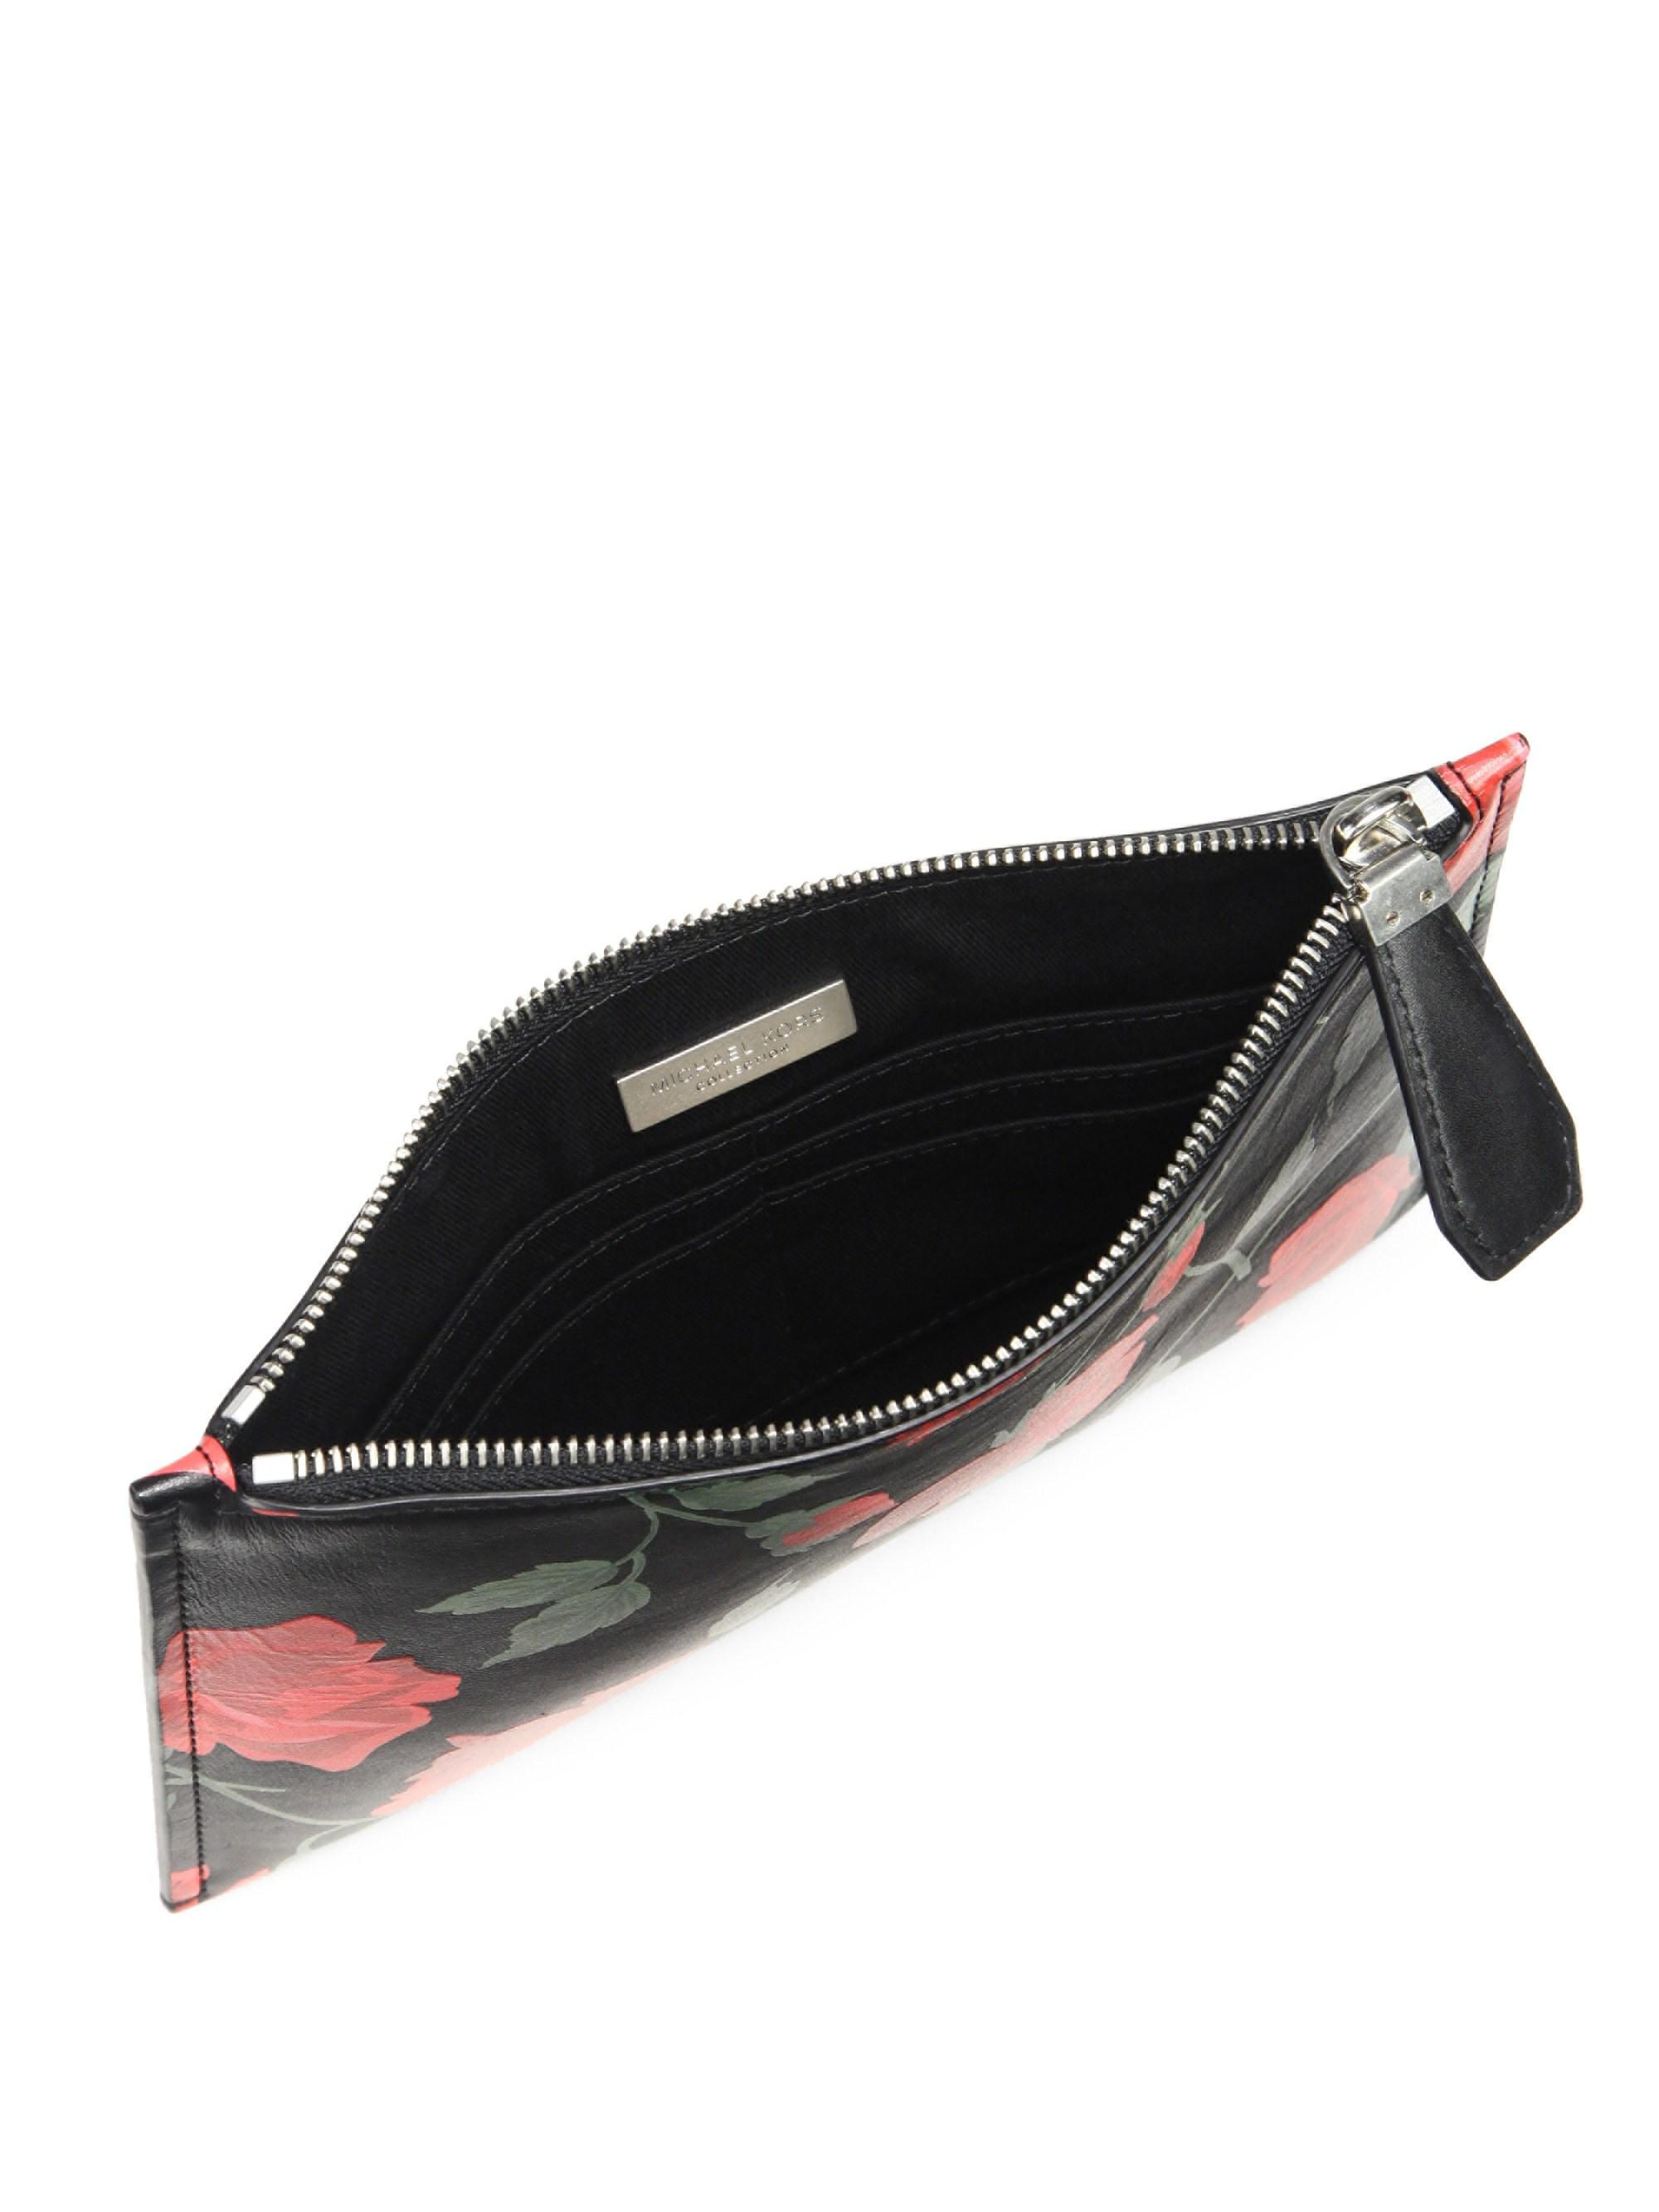 9caefb0bc451ba Michael Kors Women's Large Rose-print Leather Pouch - Red Black in ...